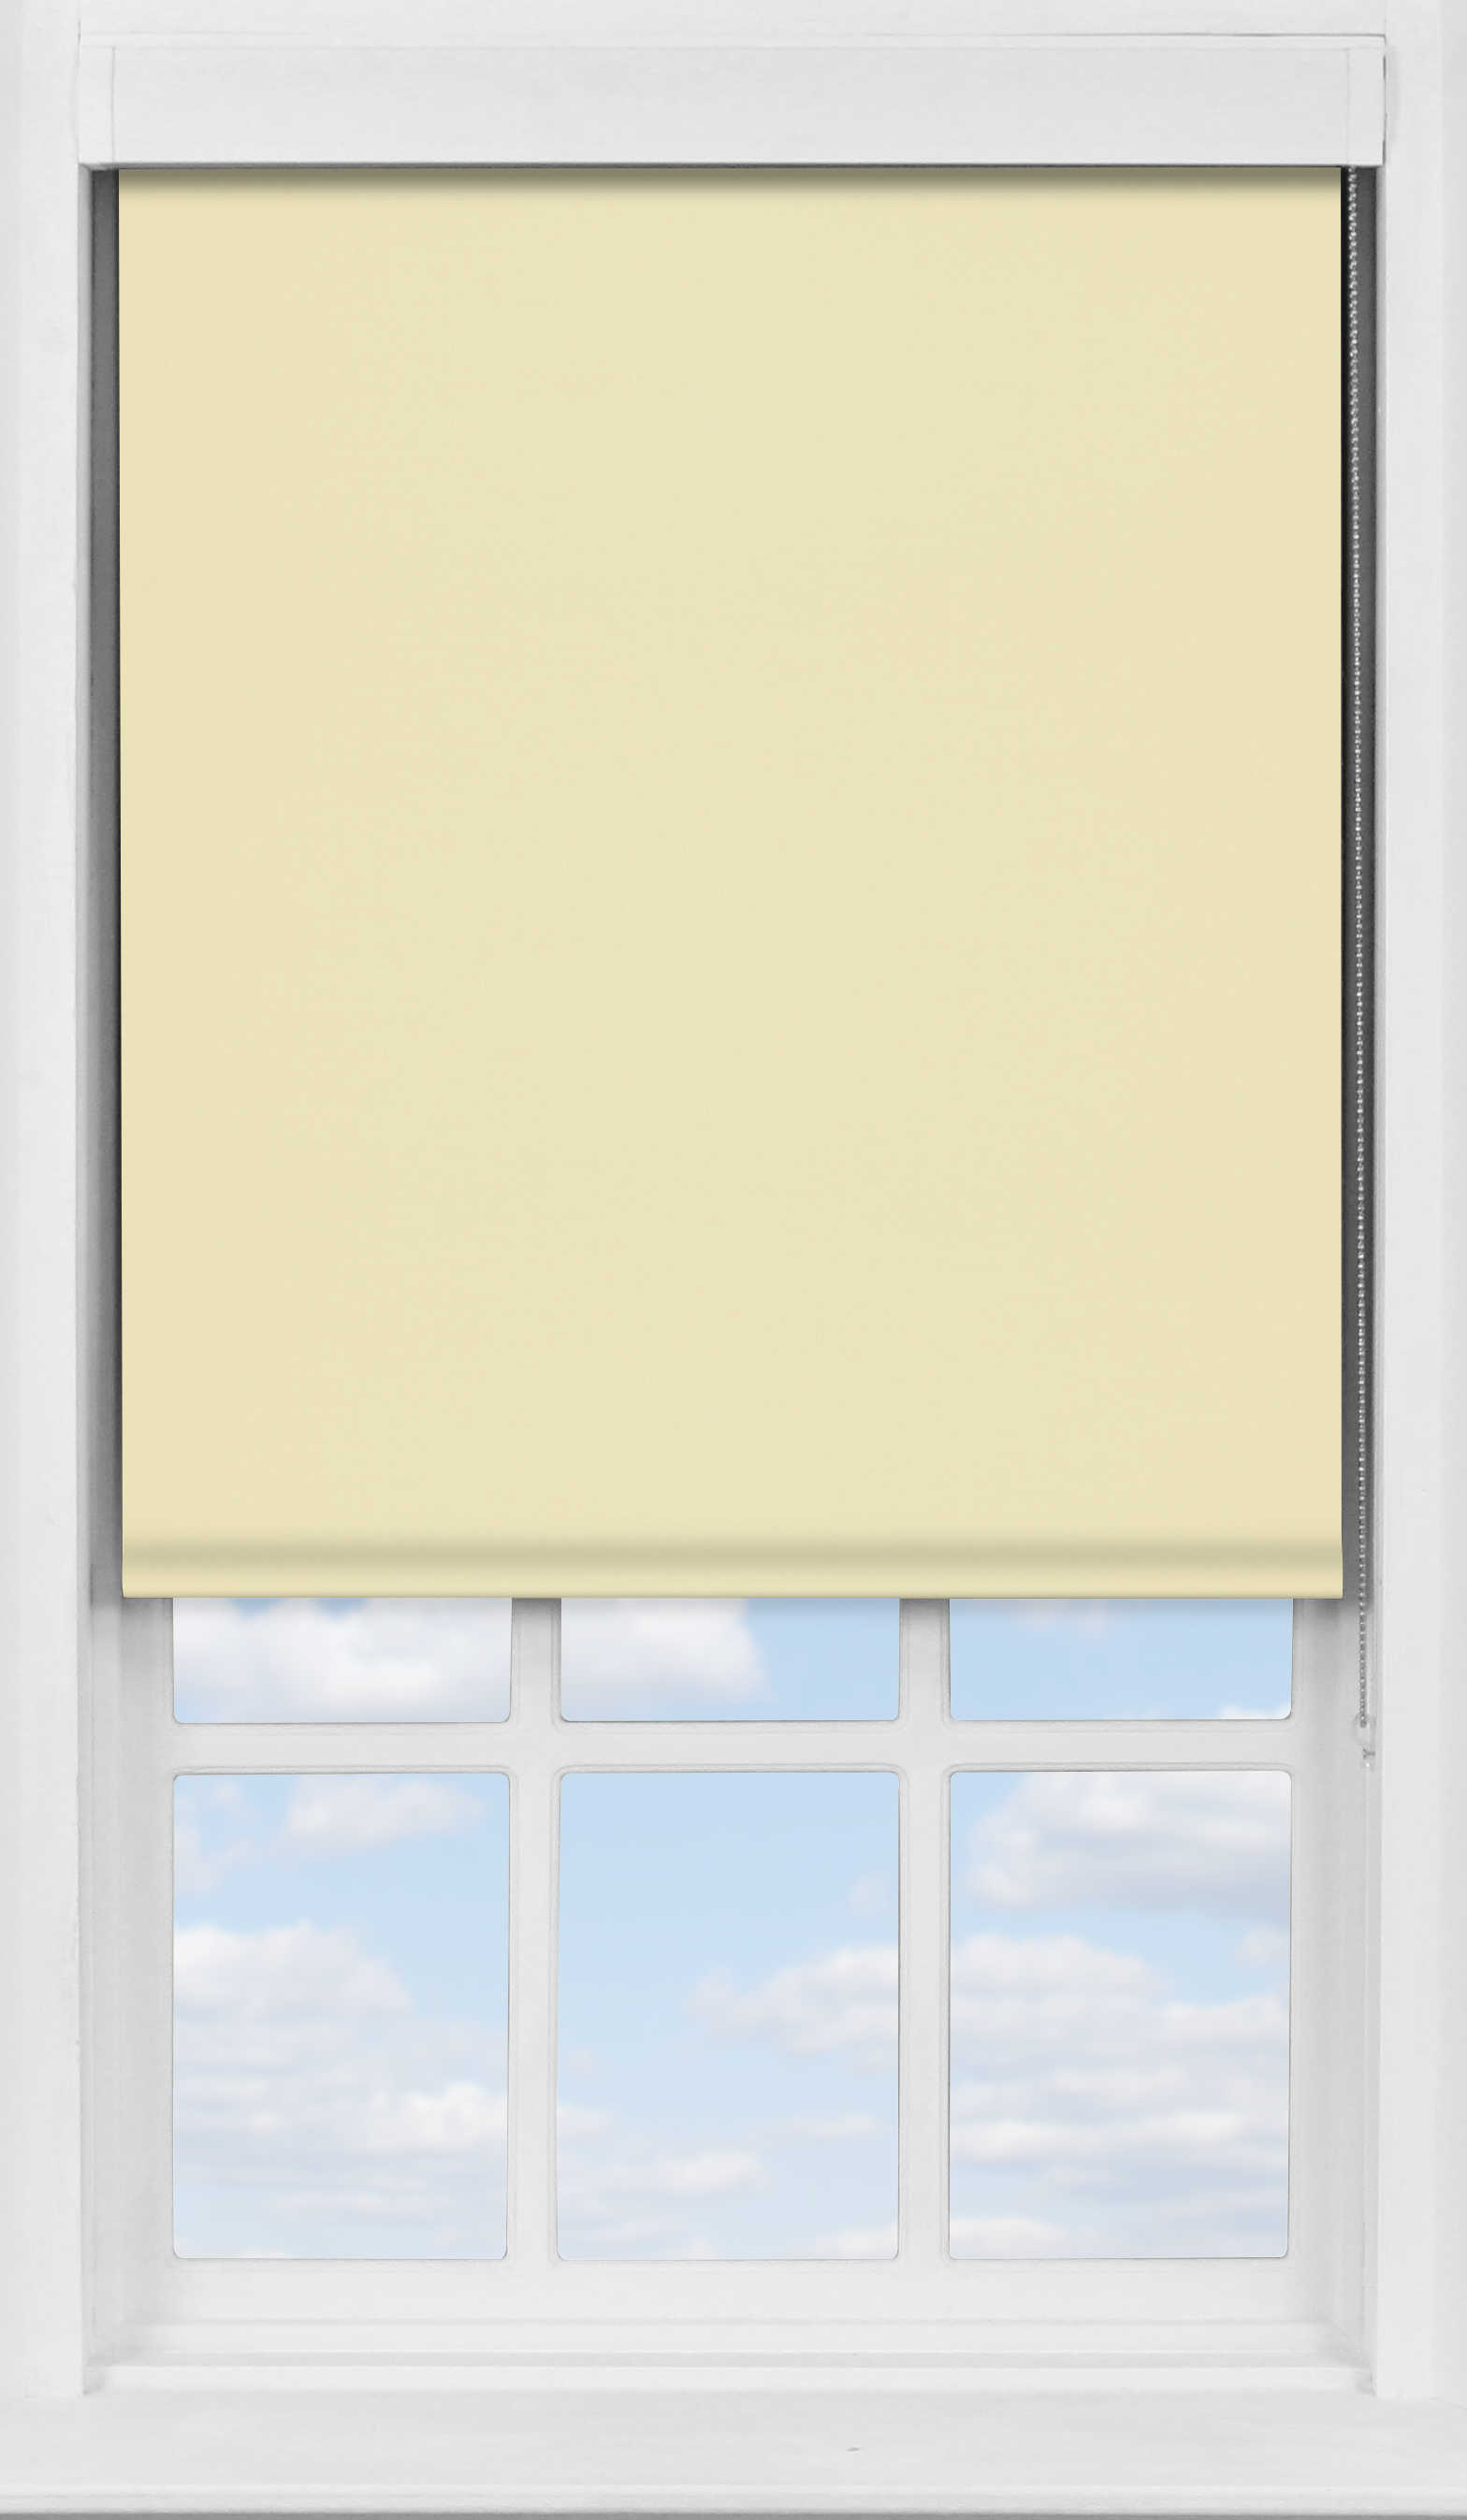 Premium Roller Blind in Latte Cream Blackout